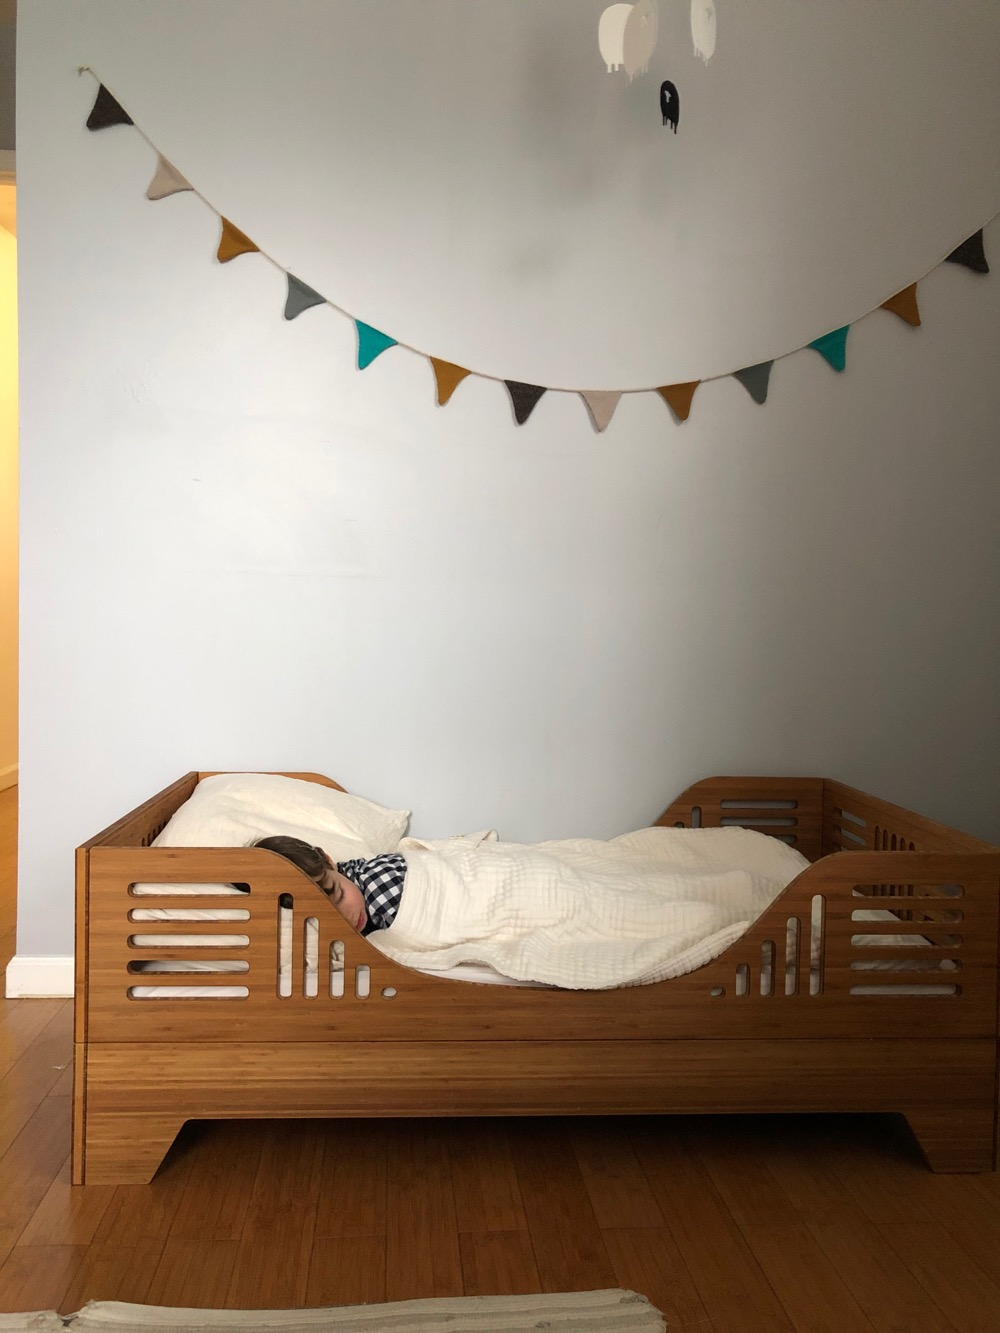 Toddler sleeping in his new bed